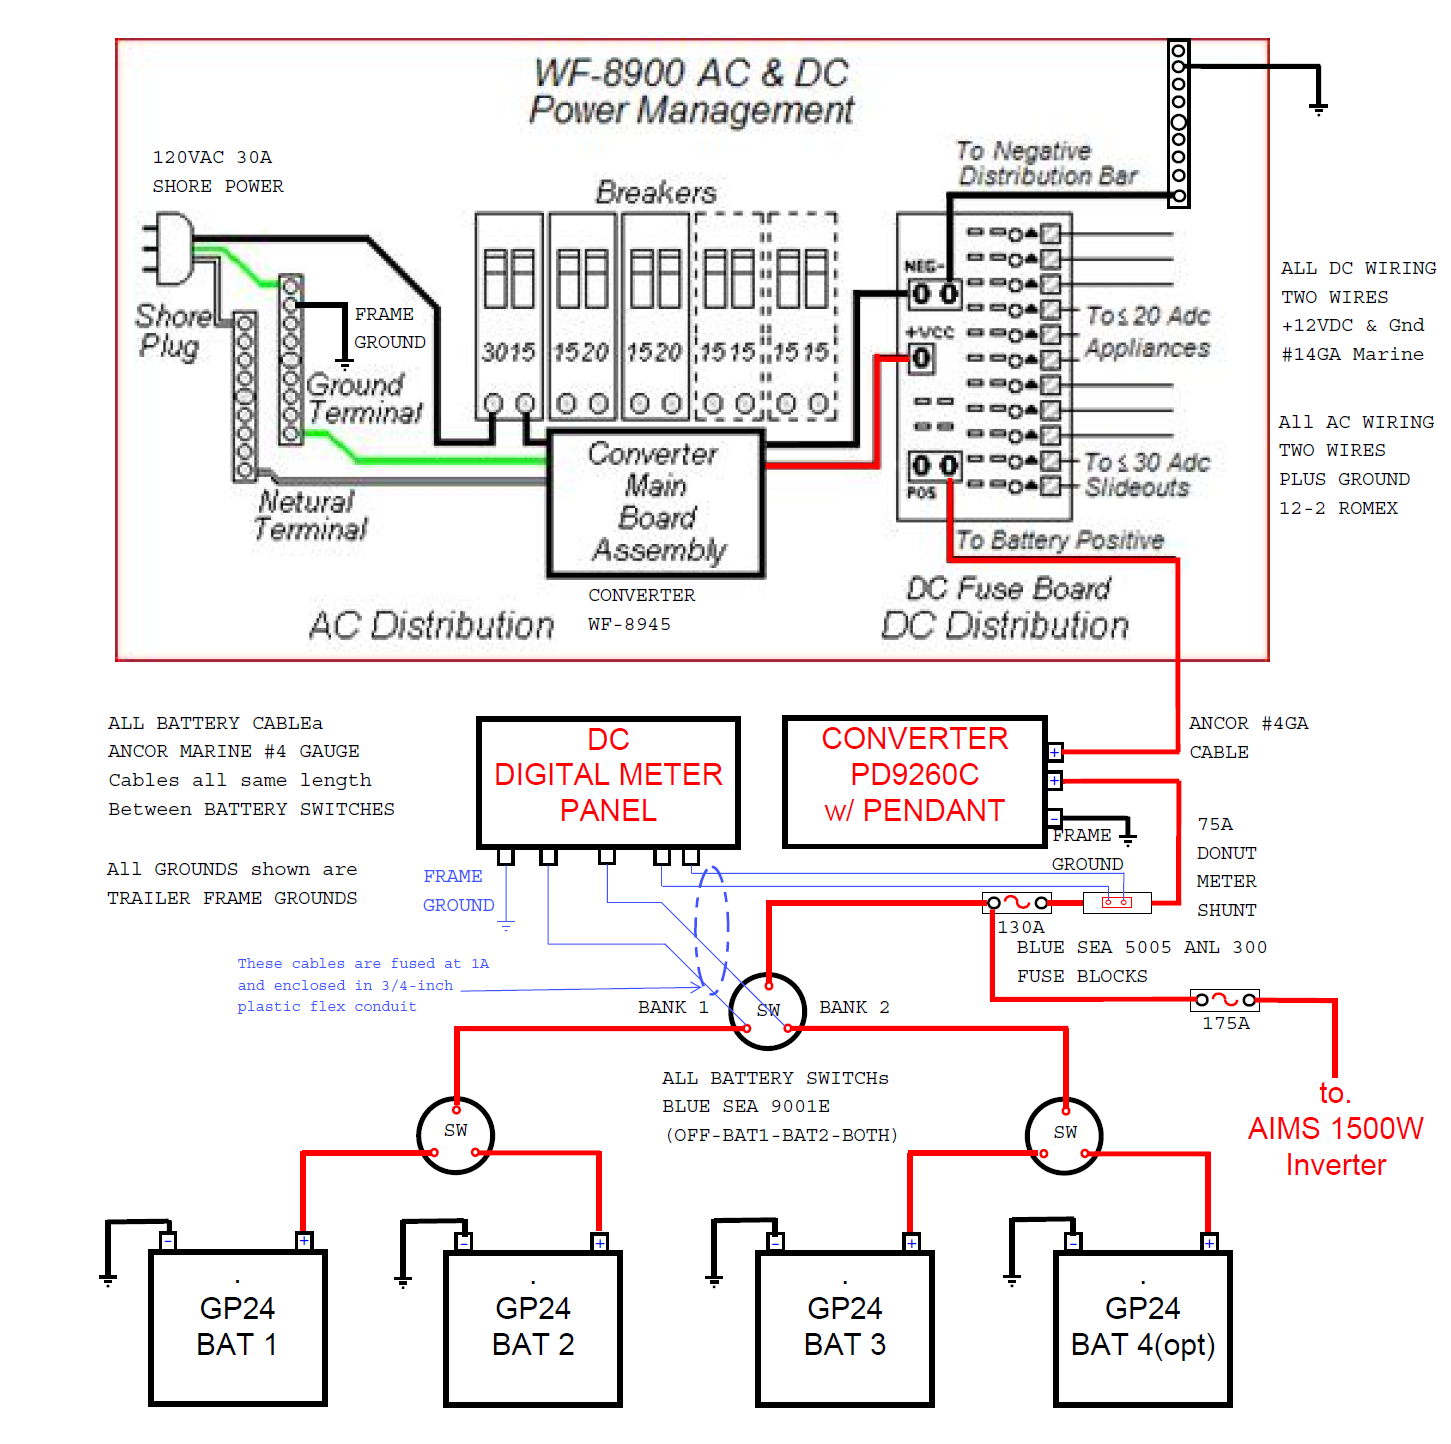 Fleetwood Battery Wiring Diagram | Wiring Schematic Diagram on